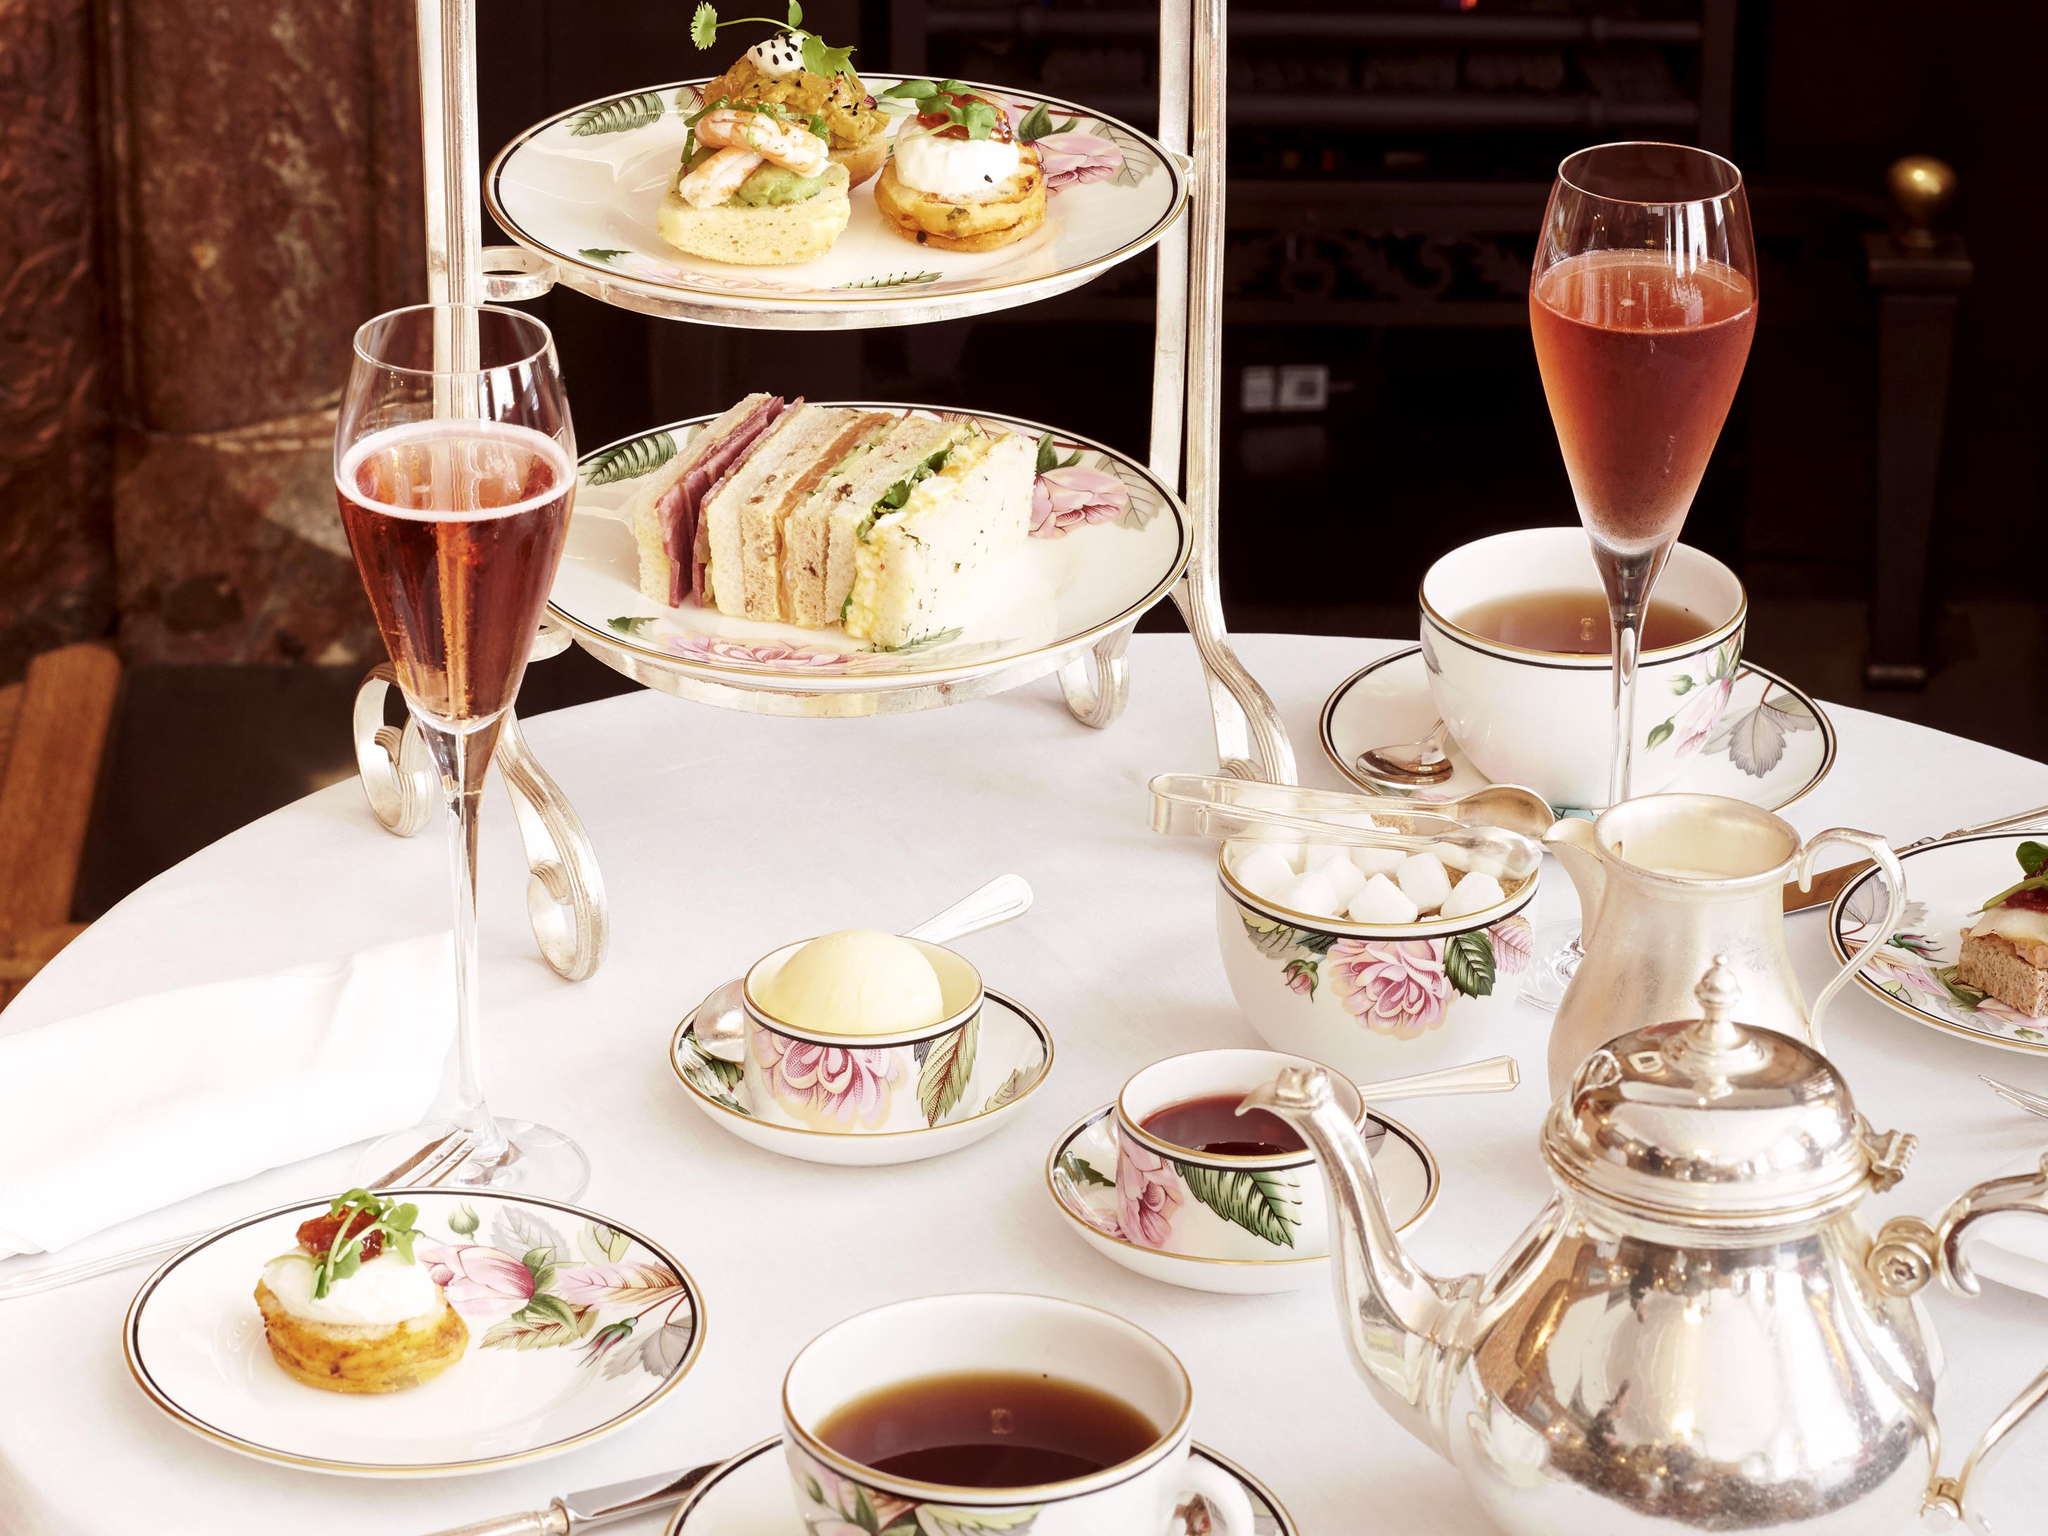 Traditional afternoon tea at English Tea Room At Brown's Hotel